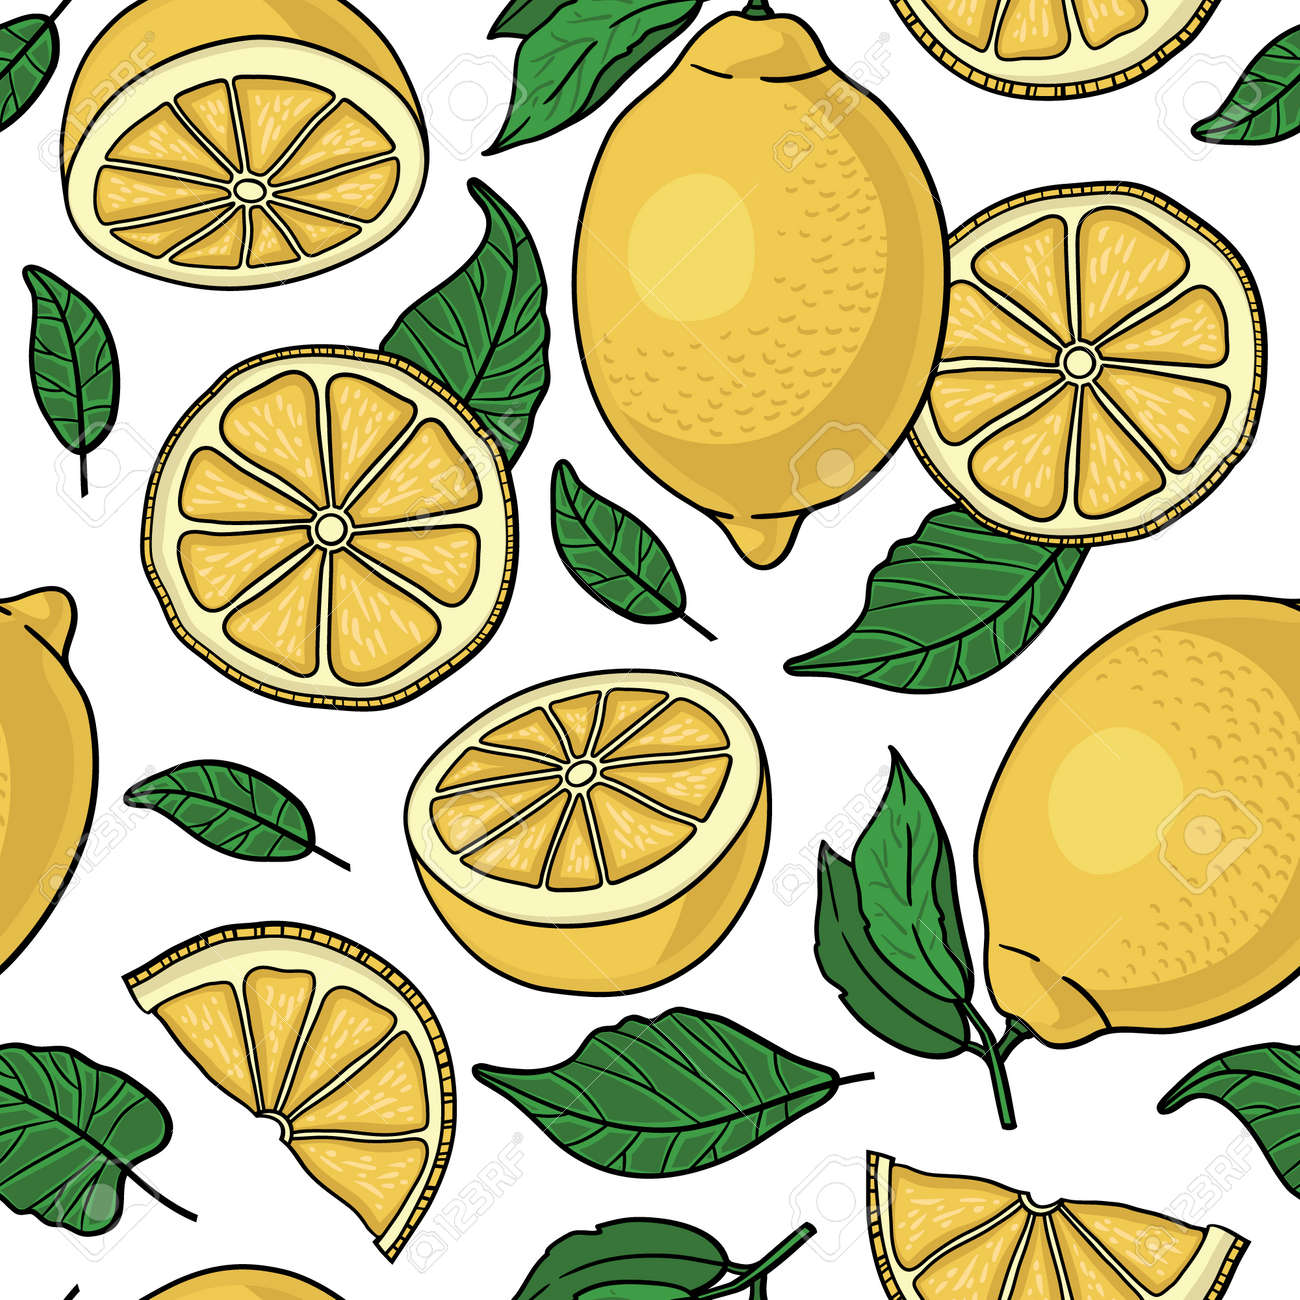 Seamless pattern with yellow lemons - vector illustration - 31614721